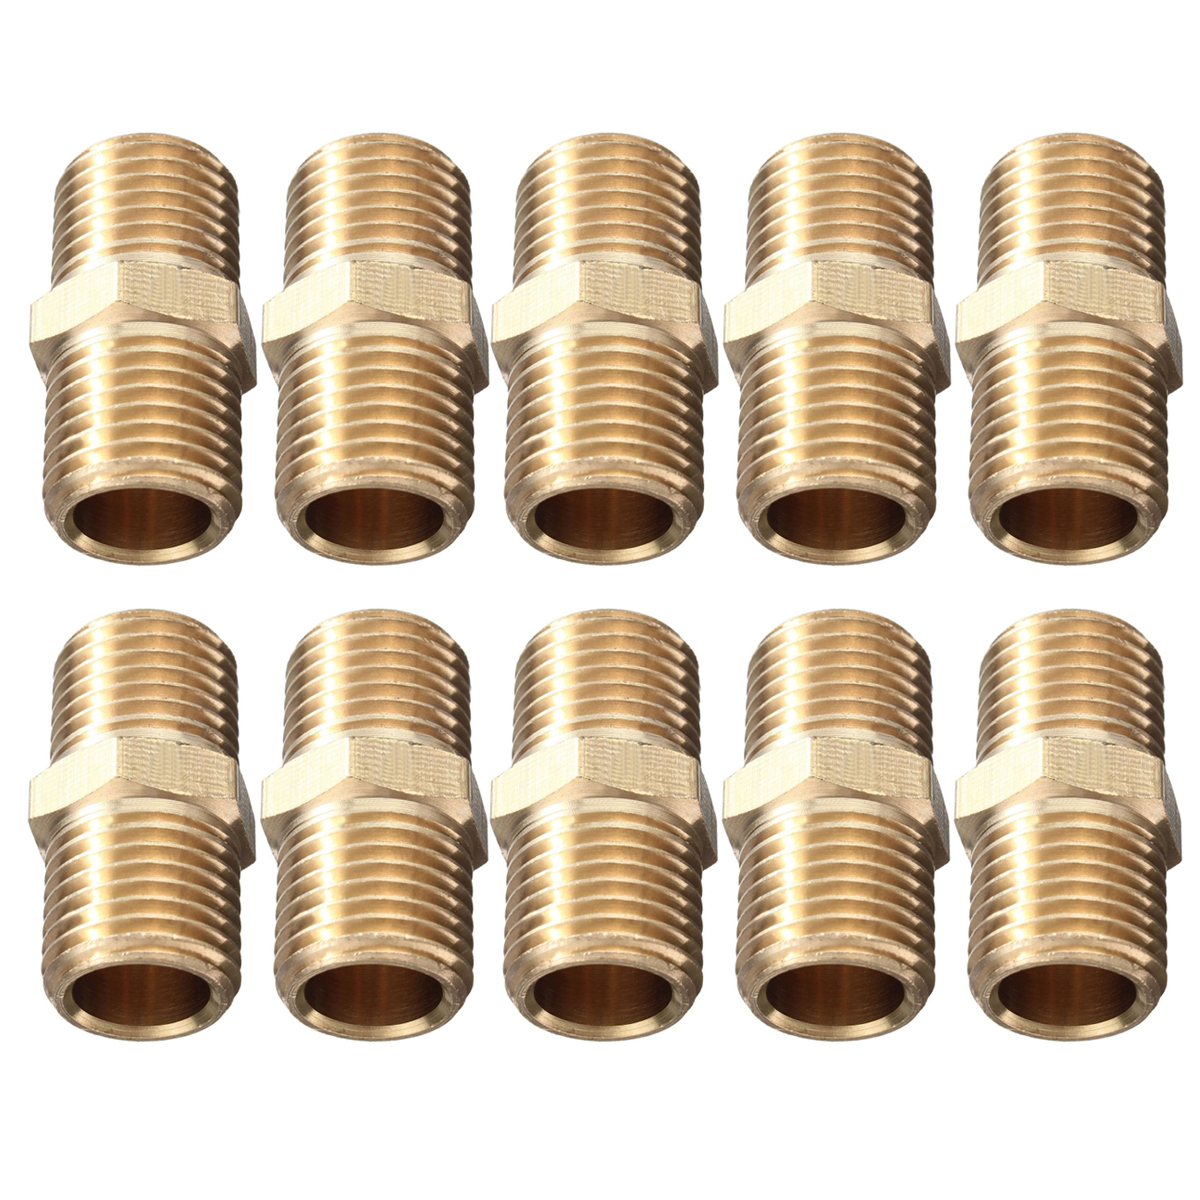 10pcs New Gold Air Line Hose Connector Euro Fitting Quick Release Set with 1/4 BSP Male Thread Mayitr 6pcs mayitr air line compressor connector euro fittings quick release coupling set with 1 4 bsp thread